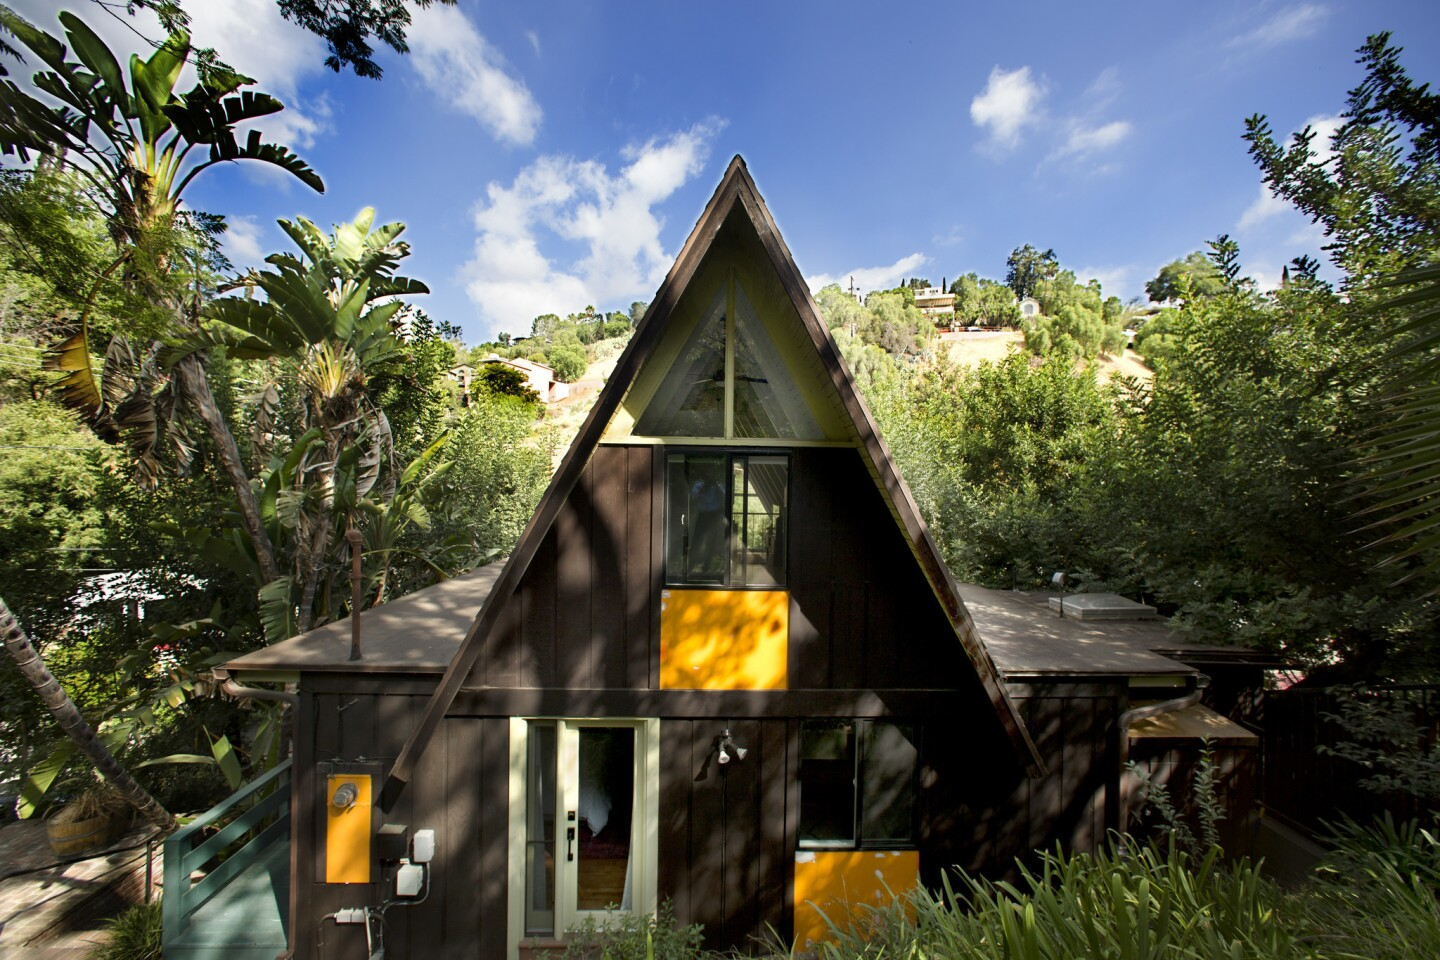 When Jake Hurwitz, 32 and his fiance Jillian Vogel, 27 moved into a 1965 A-frame cabin in Mt. Washington last year, they worked with designer Jennifer Wallenstein of September Workshop to give the interiors a more youthful feel.